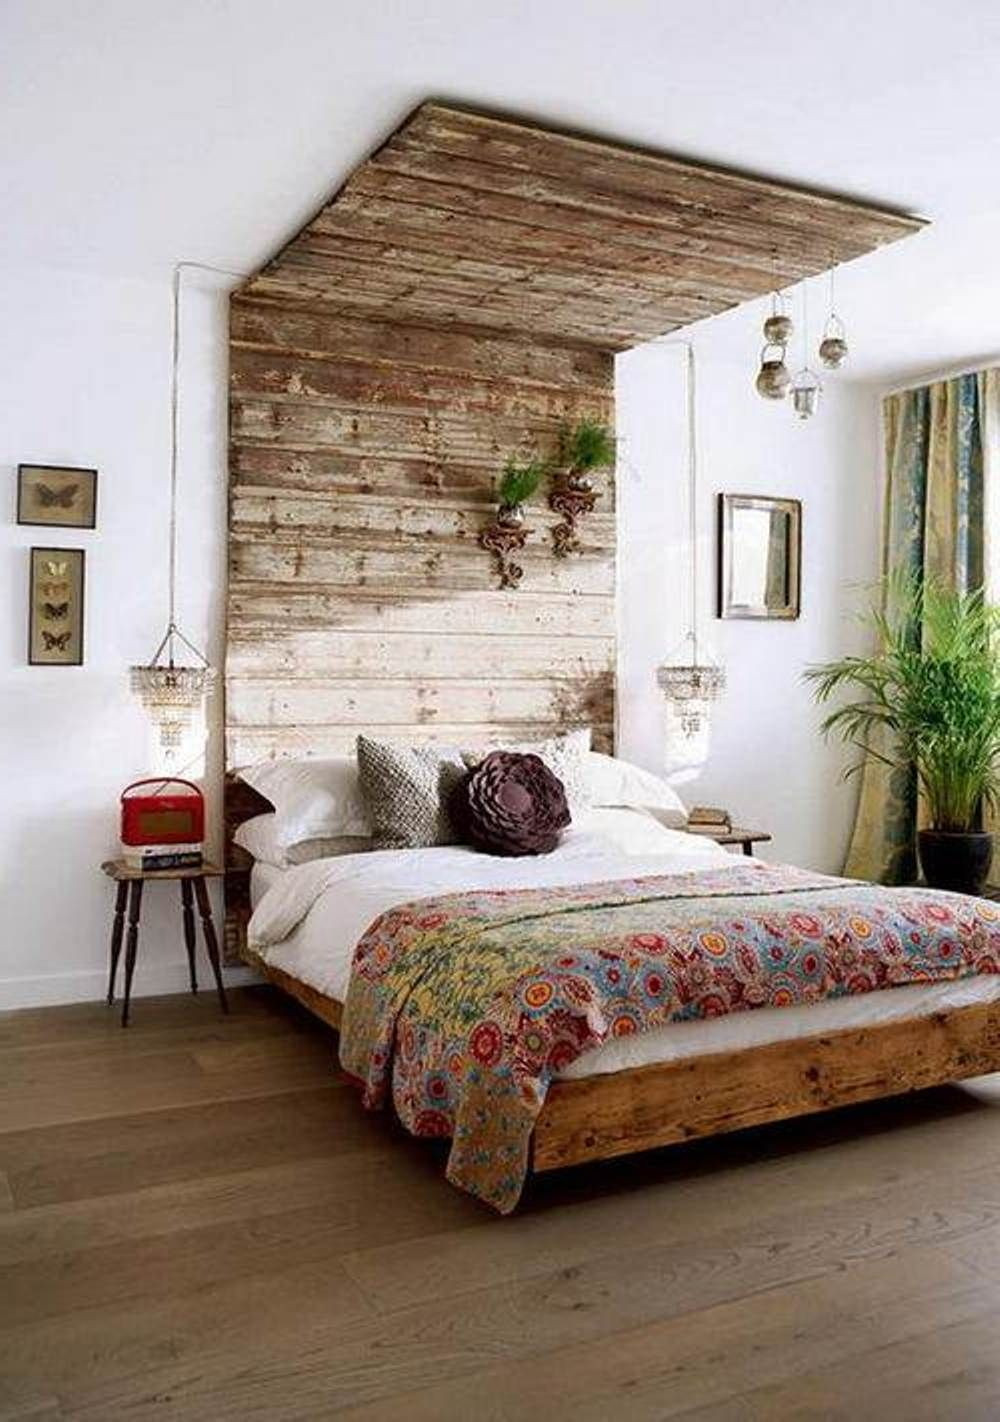 Best Bedroom Designs Minimalist Design incredible best bohemian chic bedroom ideas with creative design